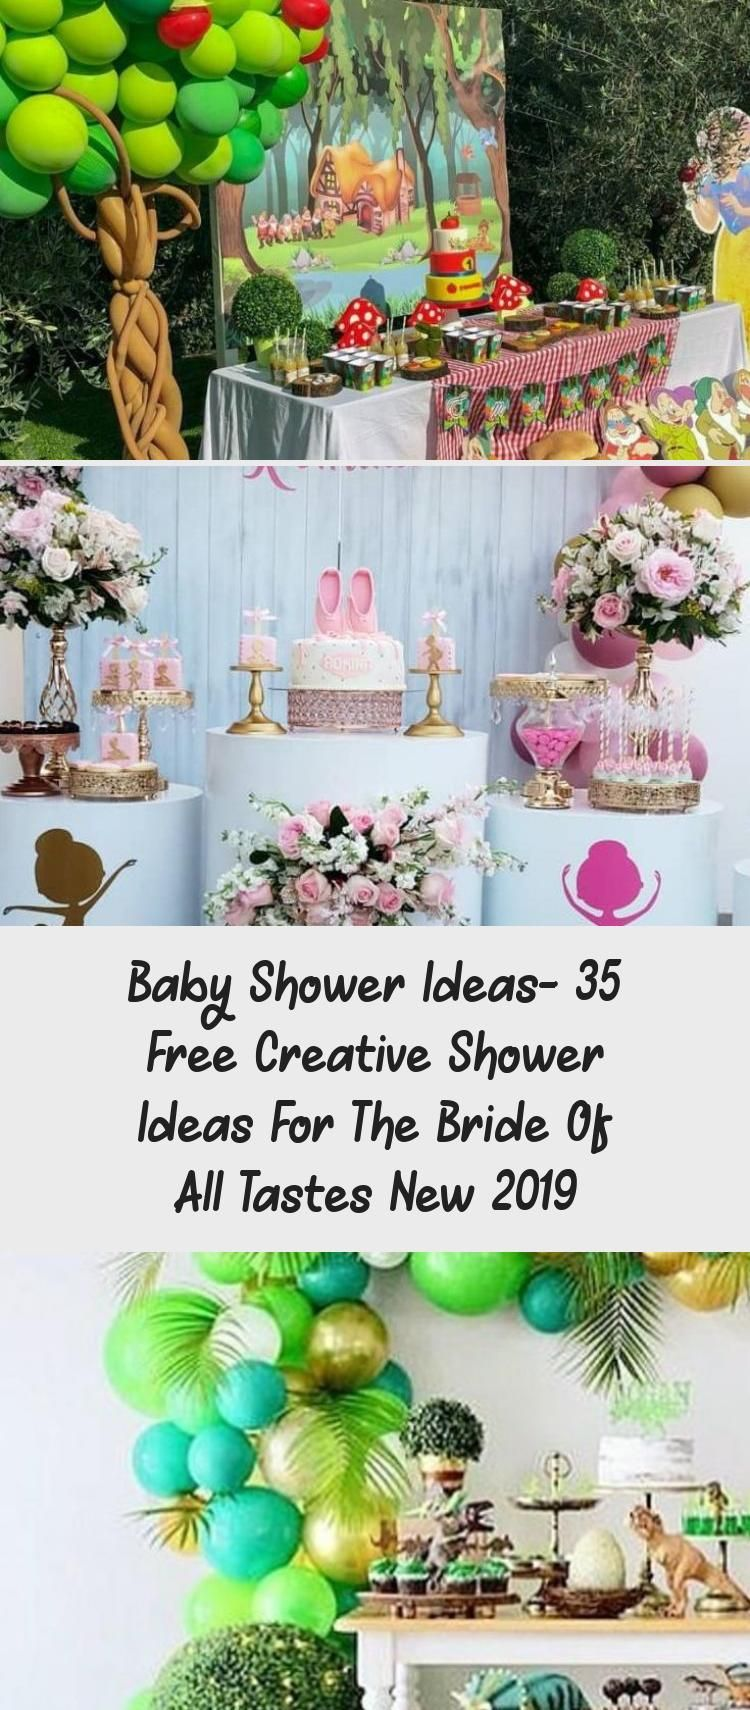 Baby Shower Ideas 35 Free Creative Shower Ideas For The